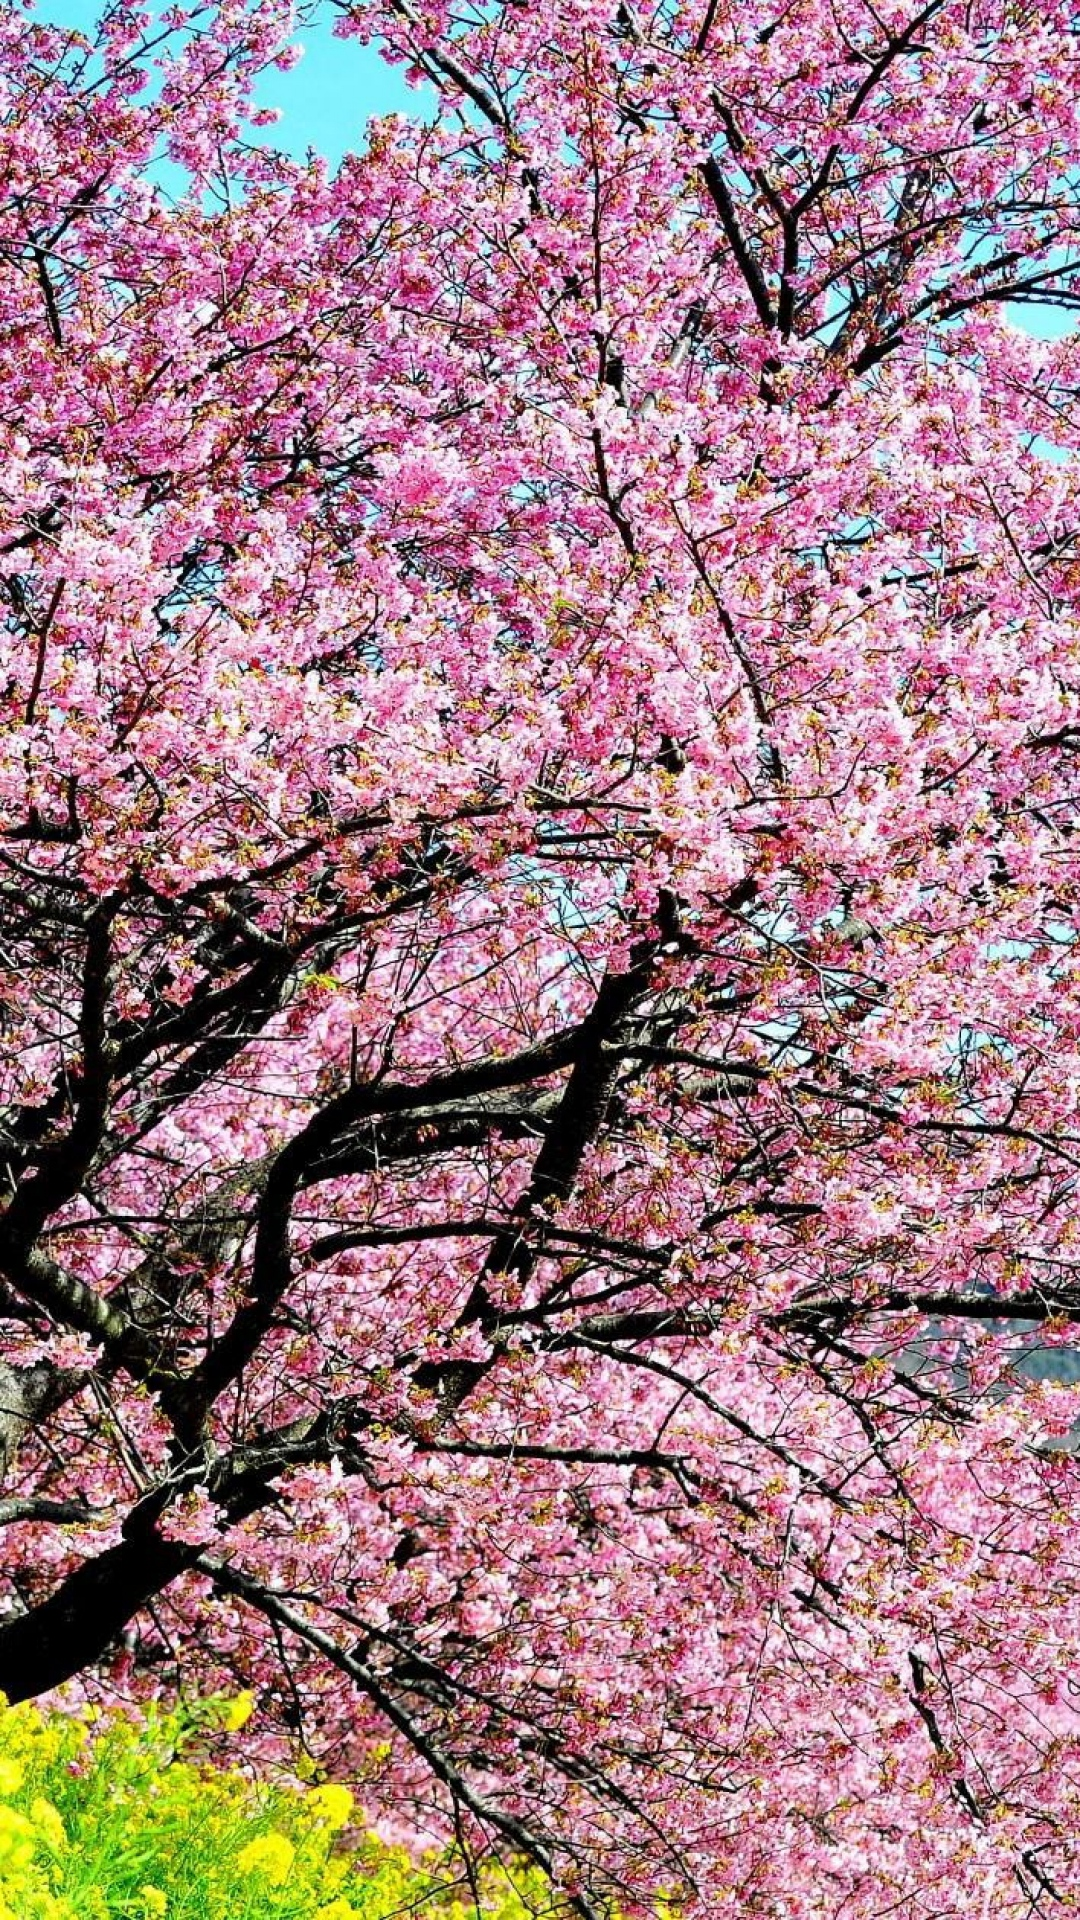 Bleach Wallpaper 3d Cherry Blossom Iphone Background Download Free